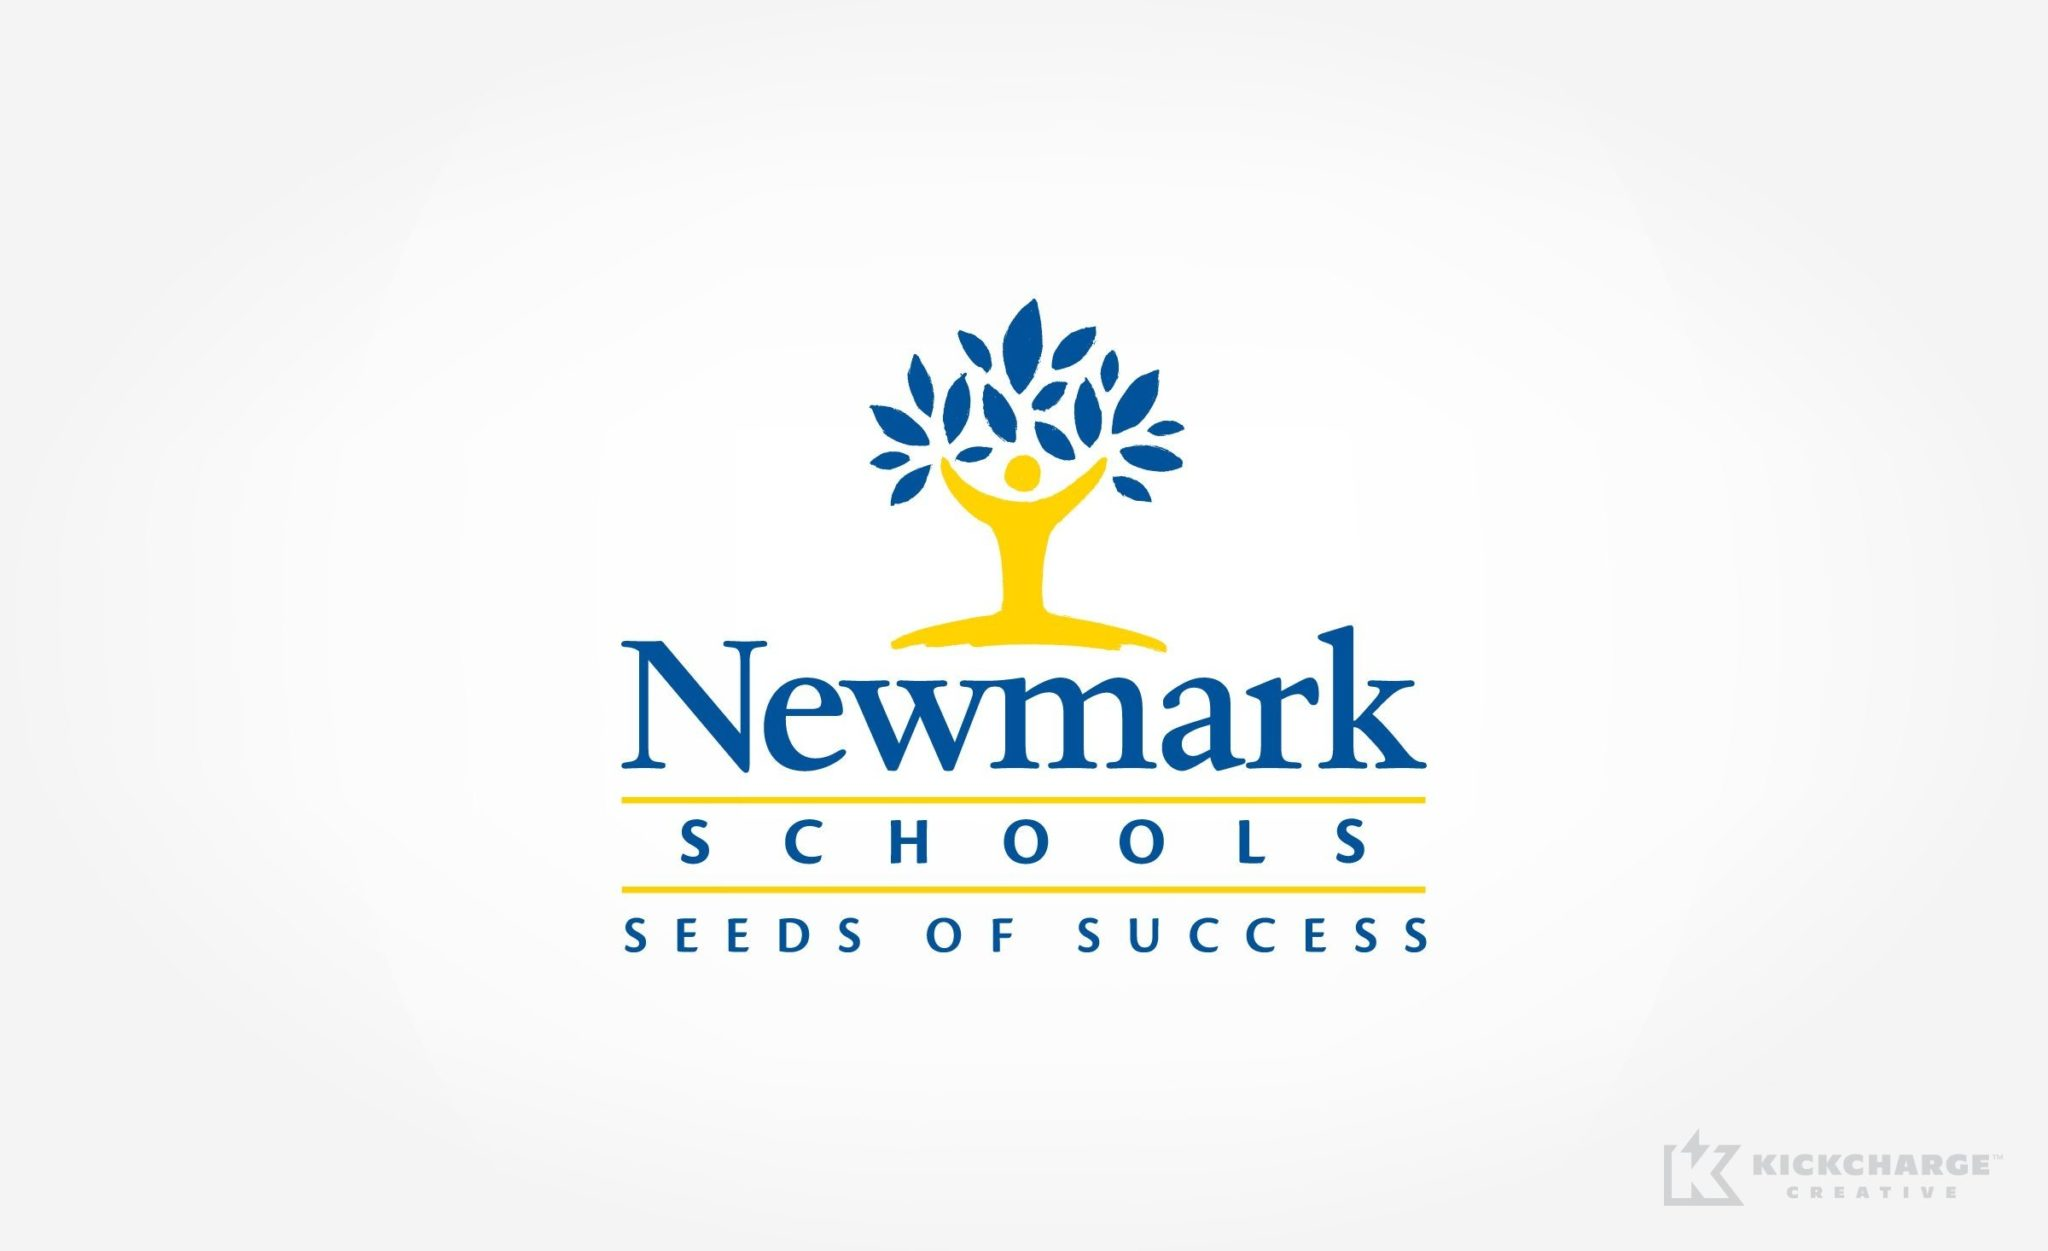 Logo design and brand identity for a private school in Plainfield, NJ.